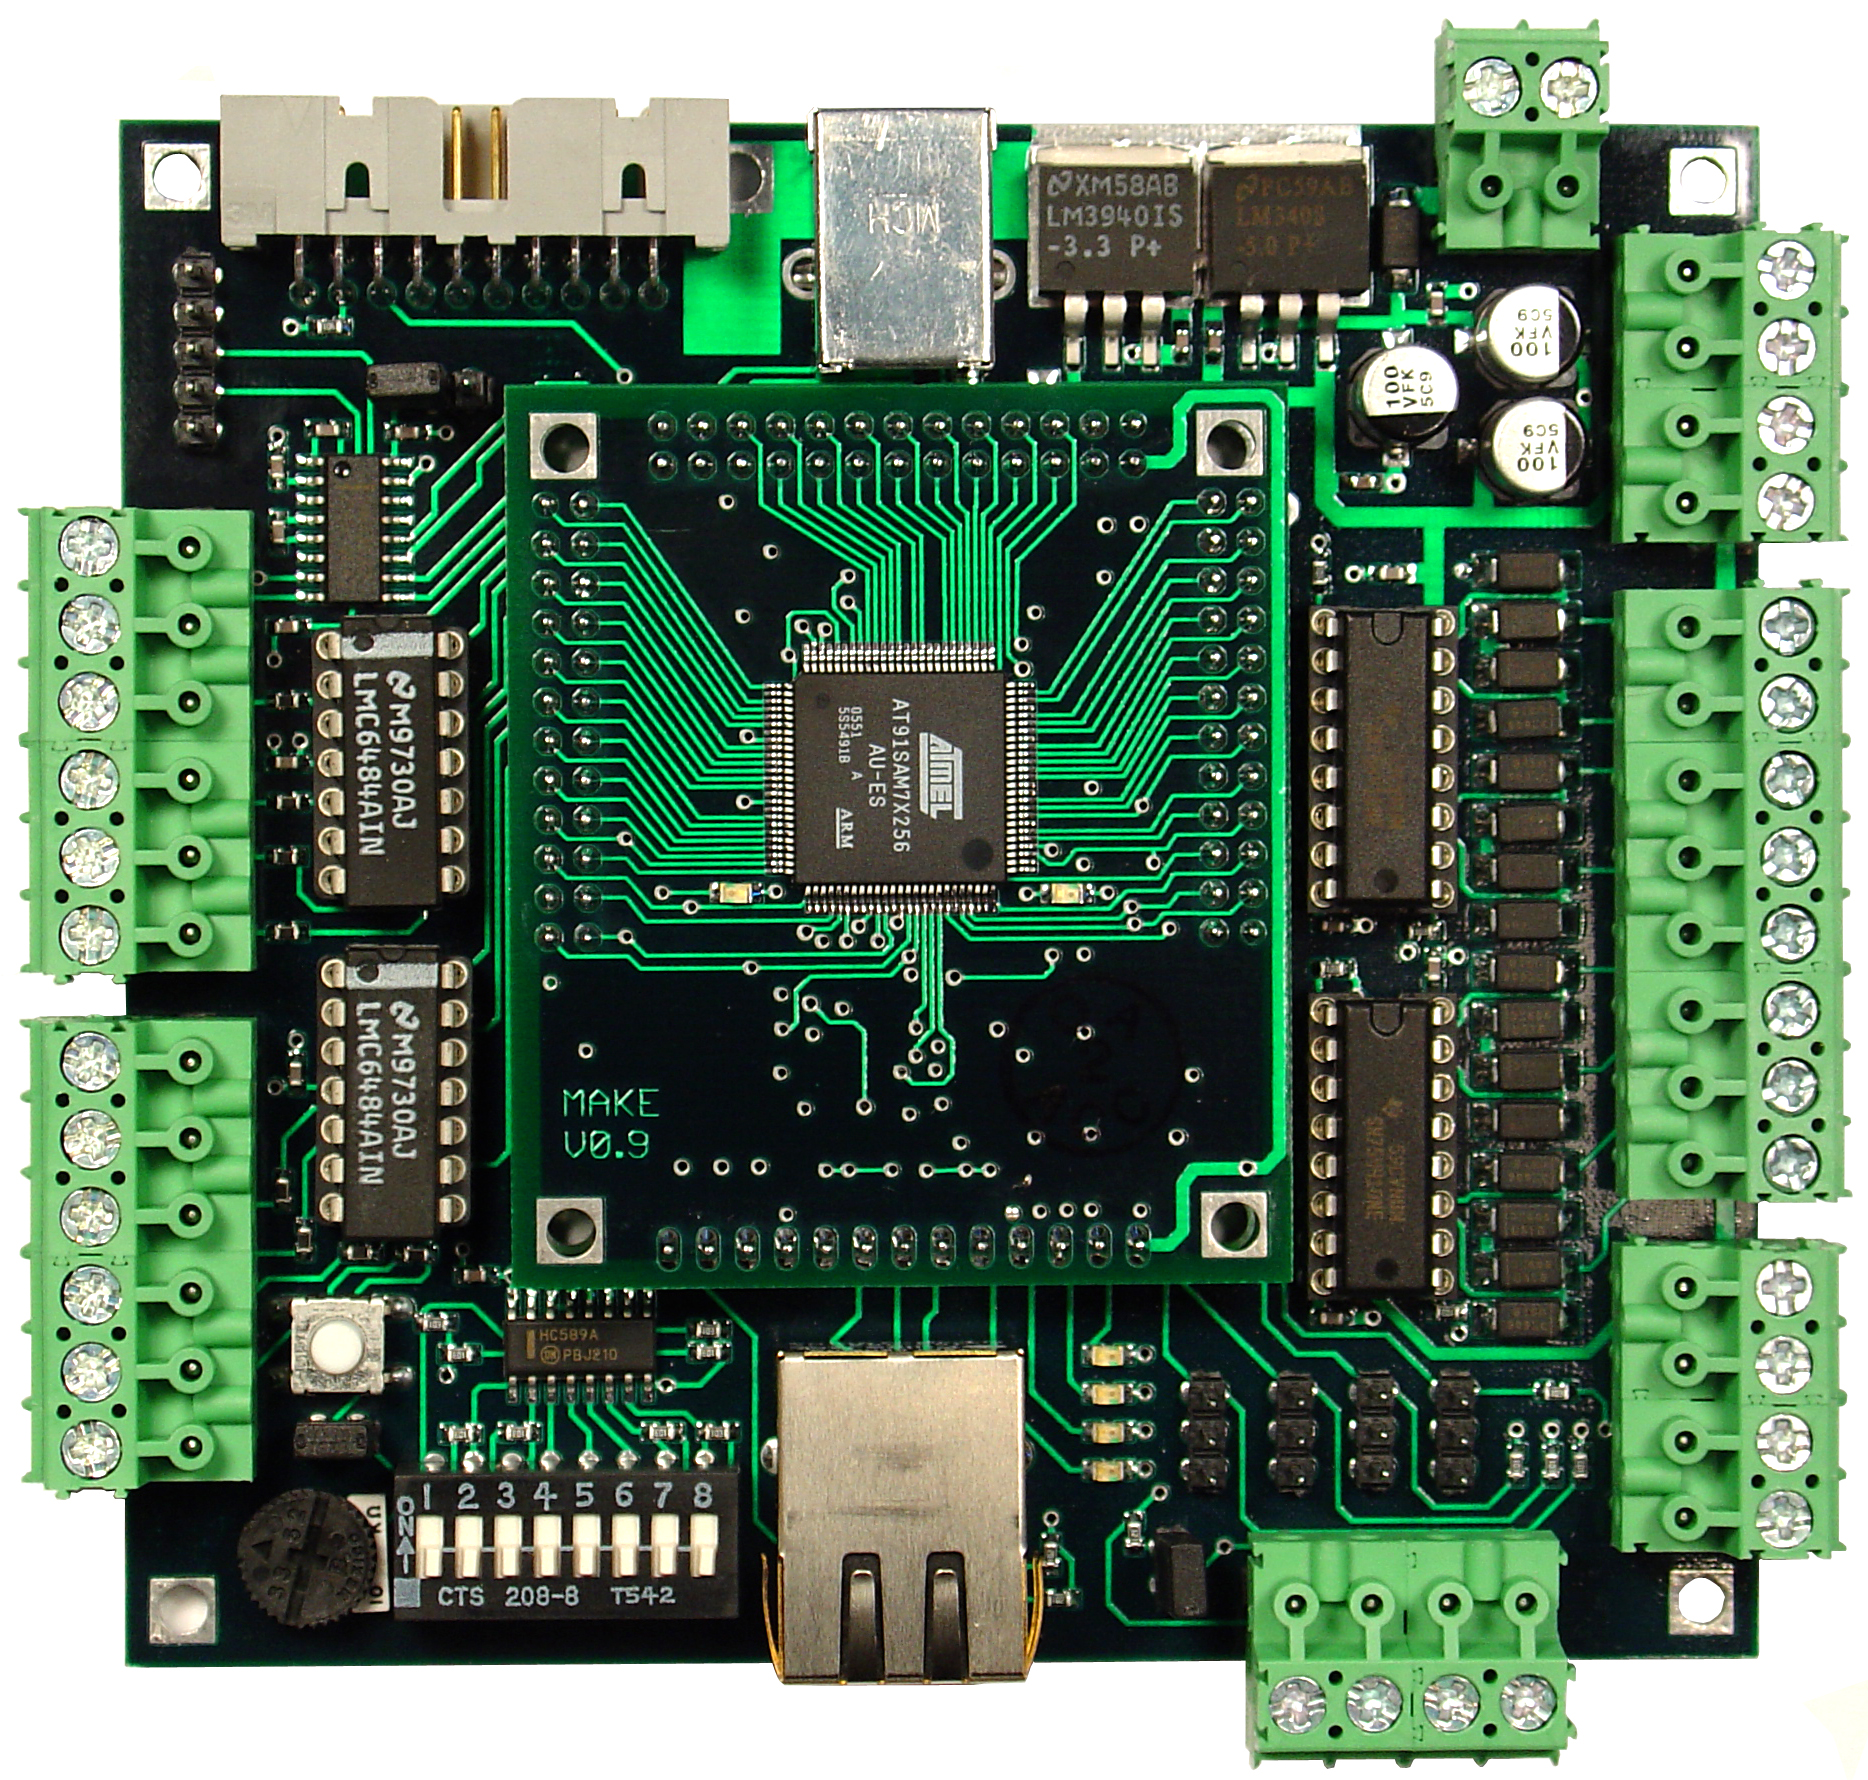 inteface_controller_with_connectors